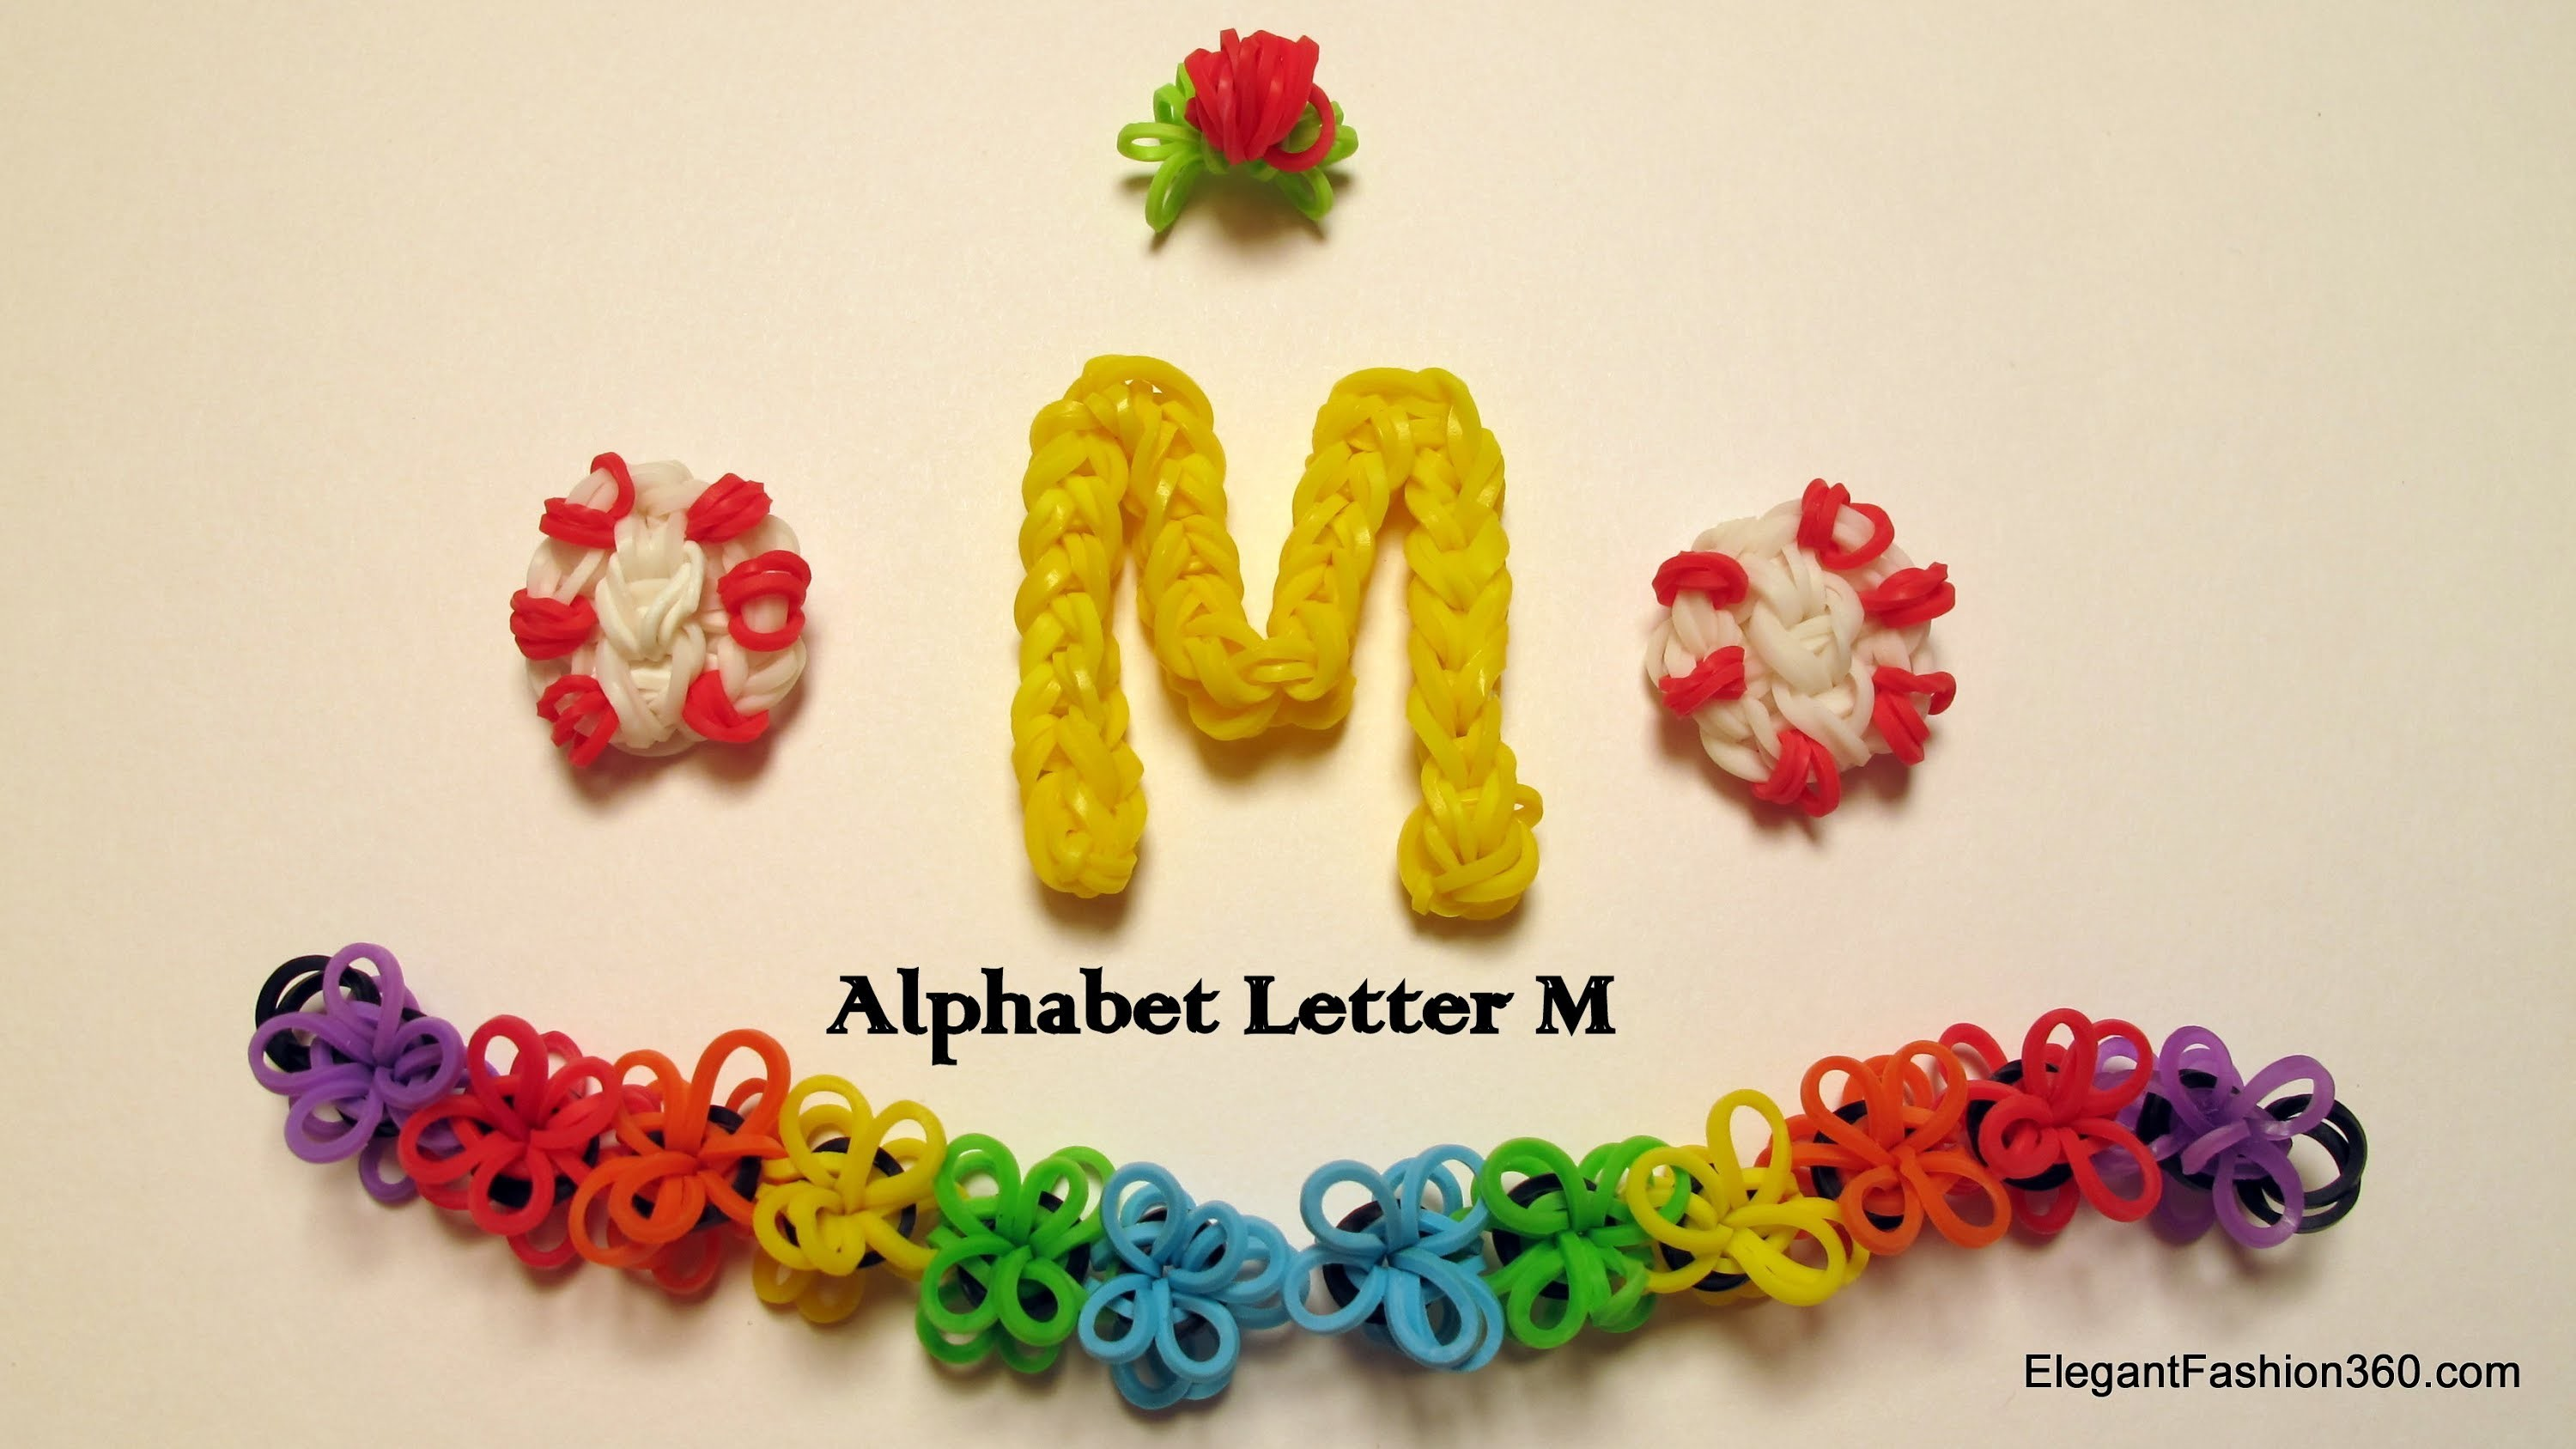 How to Make Alphabet Letter M Charm on Rainbow Loom